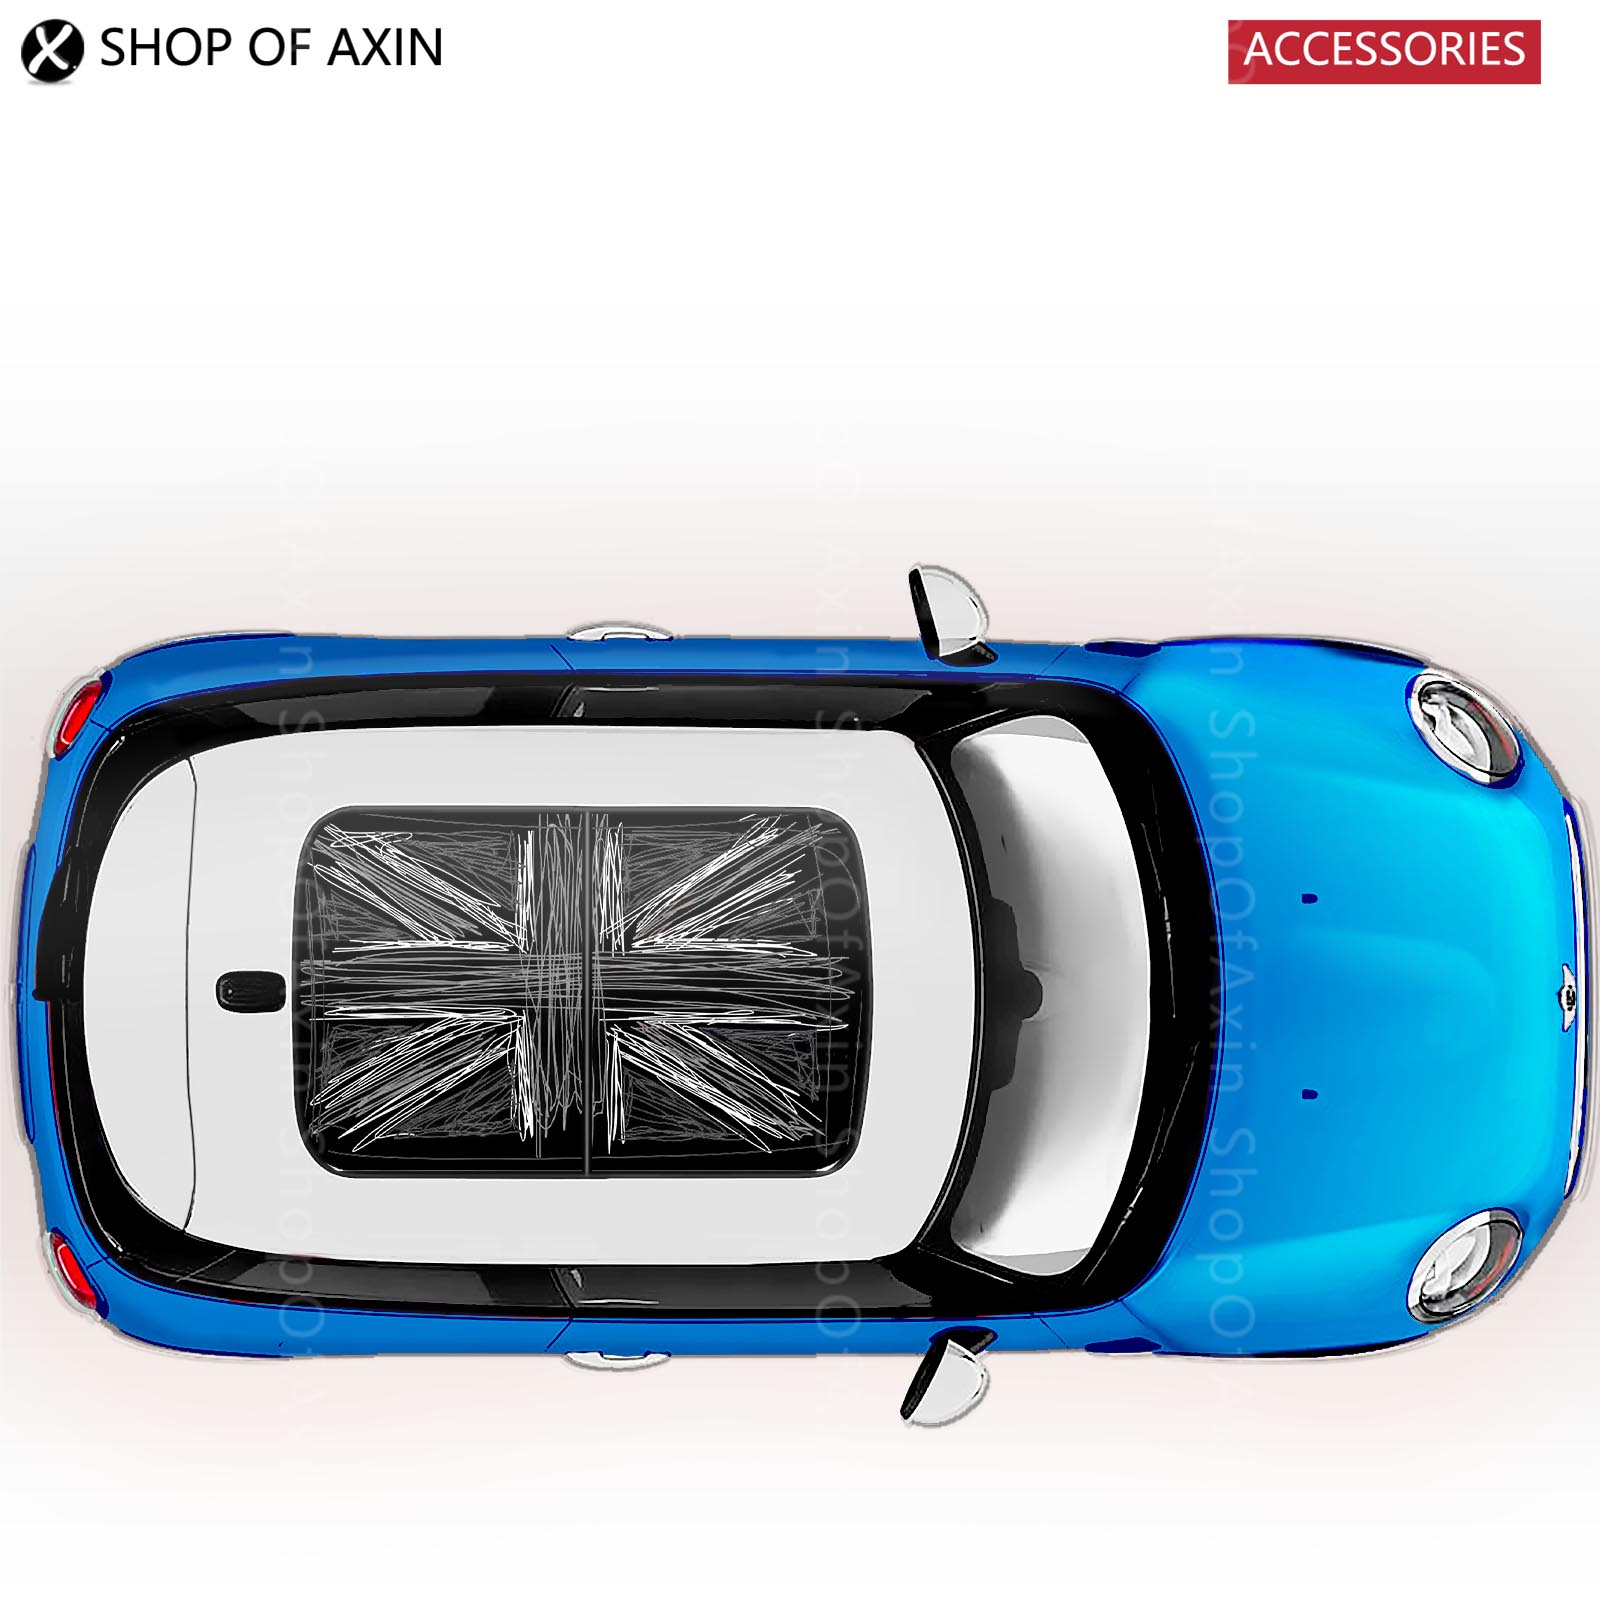 GreySketch UK sun roof Graphics stickers Sunroof for MINI Cooper clubman countryman hardtop R50 R53 R55 R56 R60 R61 F54 F55 F56 car door rocker panel decoration sticker graphics for mini cooper clubman countryman hardtop r50 r53 r55 r56 r60 r61 f54 f55 f56